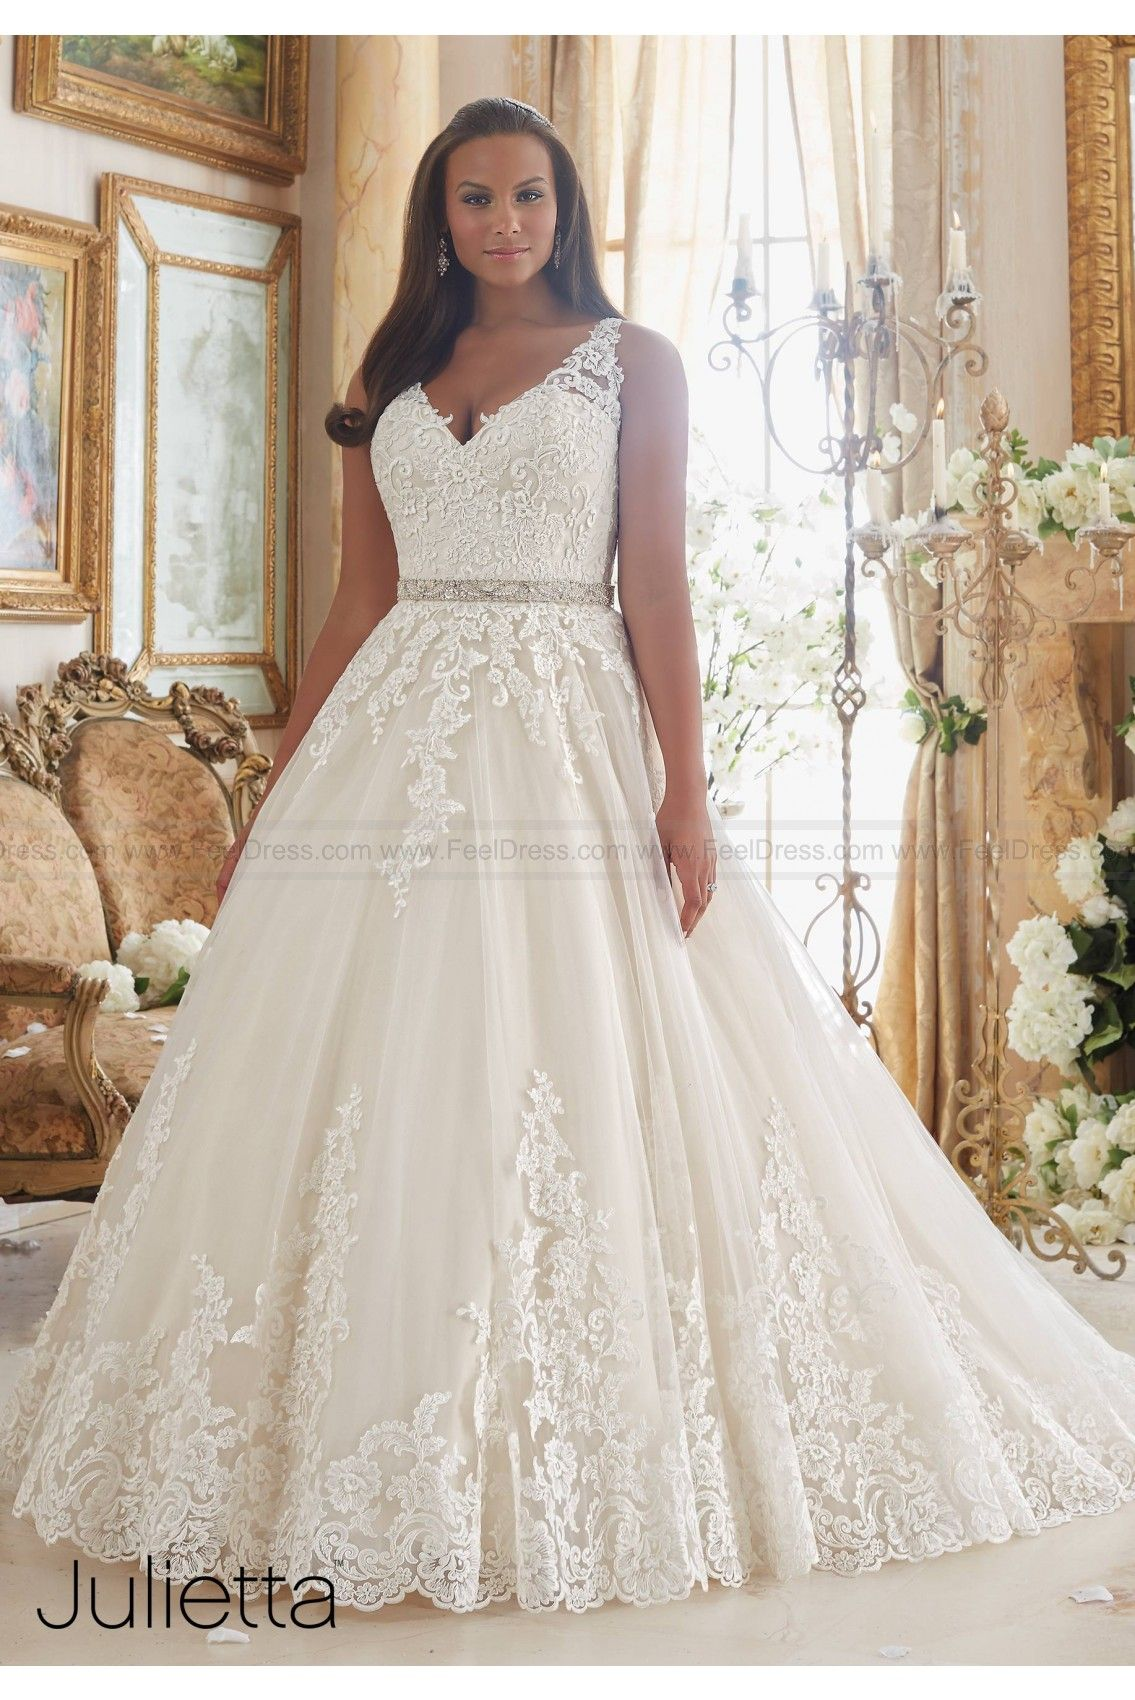 Mori lee wedding dresses style 3208 mori lee pinterest mori wedding dresses plus size wedding dress 3208 embroidered lace appliques on tulle ball gown with scalloped hemline unique wedding dress ombrellifo Choice Image